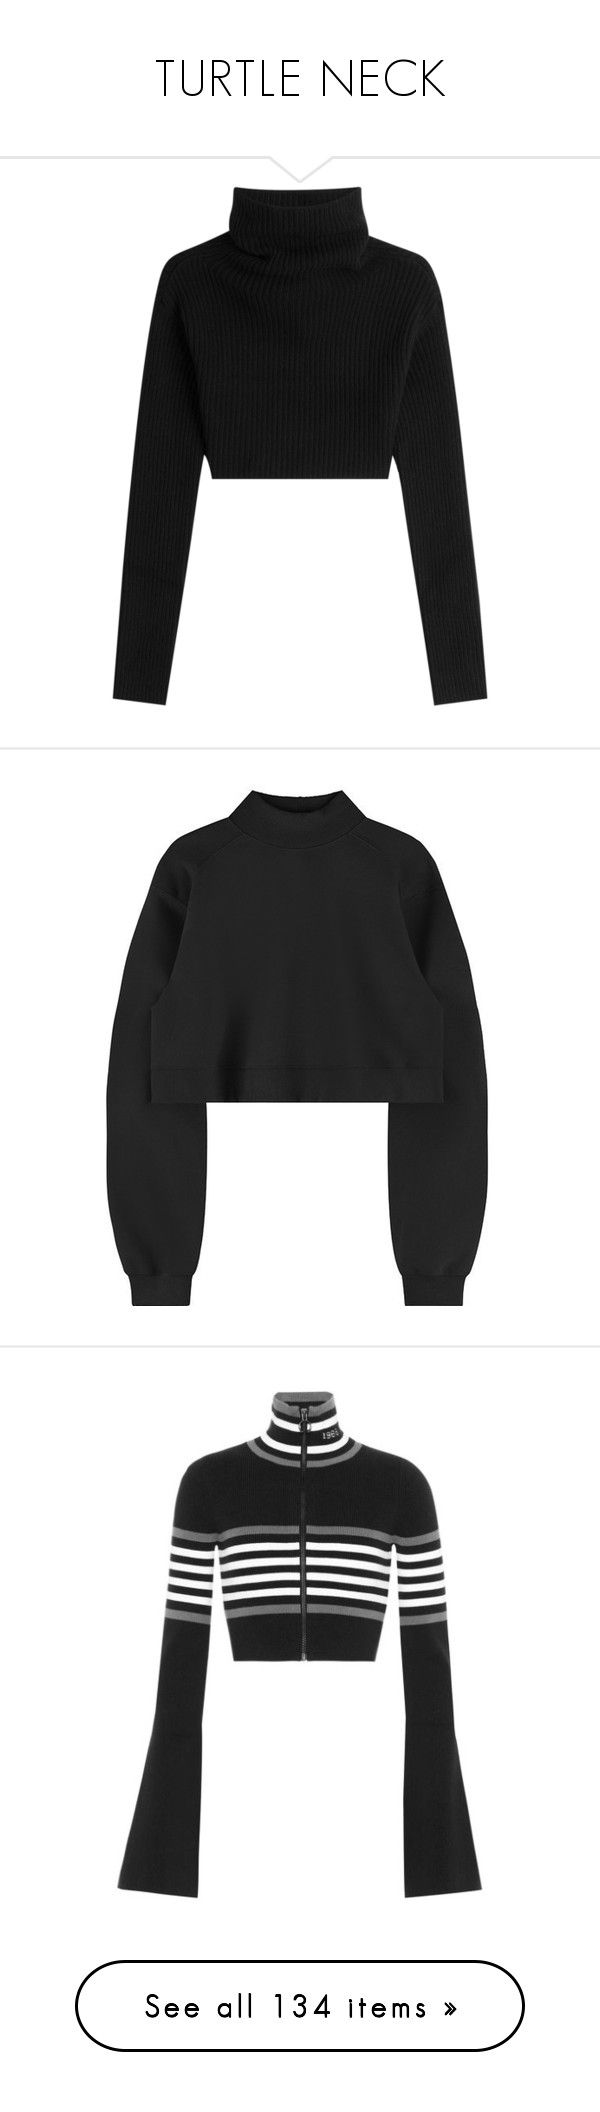 """TURTLE NECK"" by jayda-xx ❤ liked on Polyvore featuring tops, sweaters, crop tops, shirts, black, turtle neck crop top, cropped sweater, turtleneck crop top, cropped turtleneck sweater and fitted shirts"